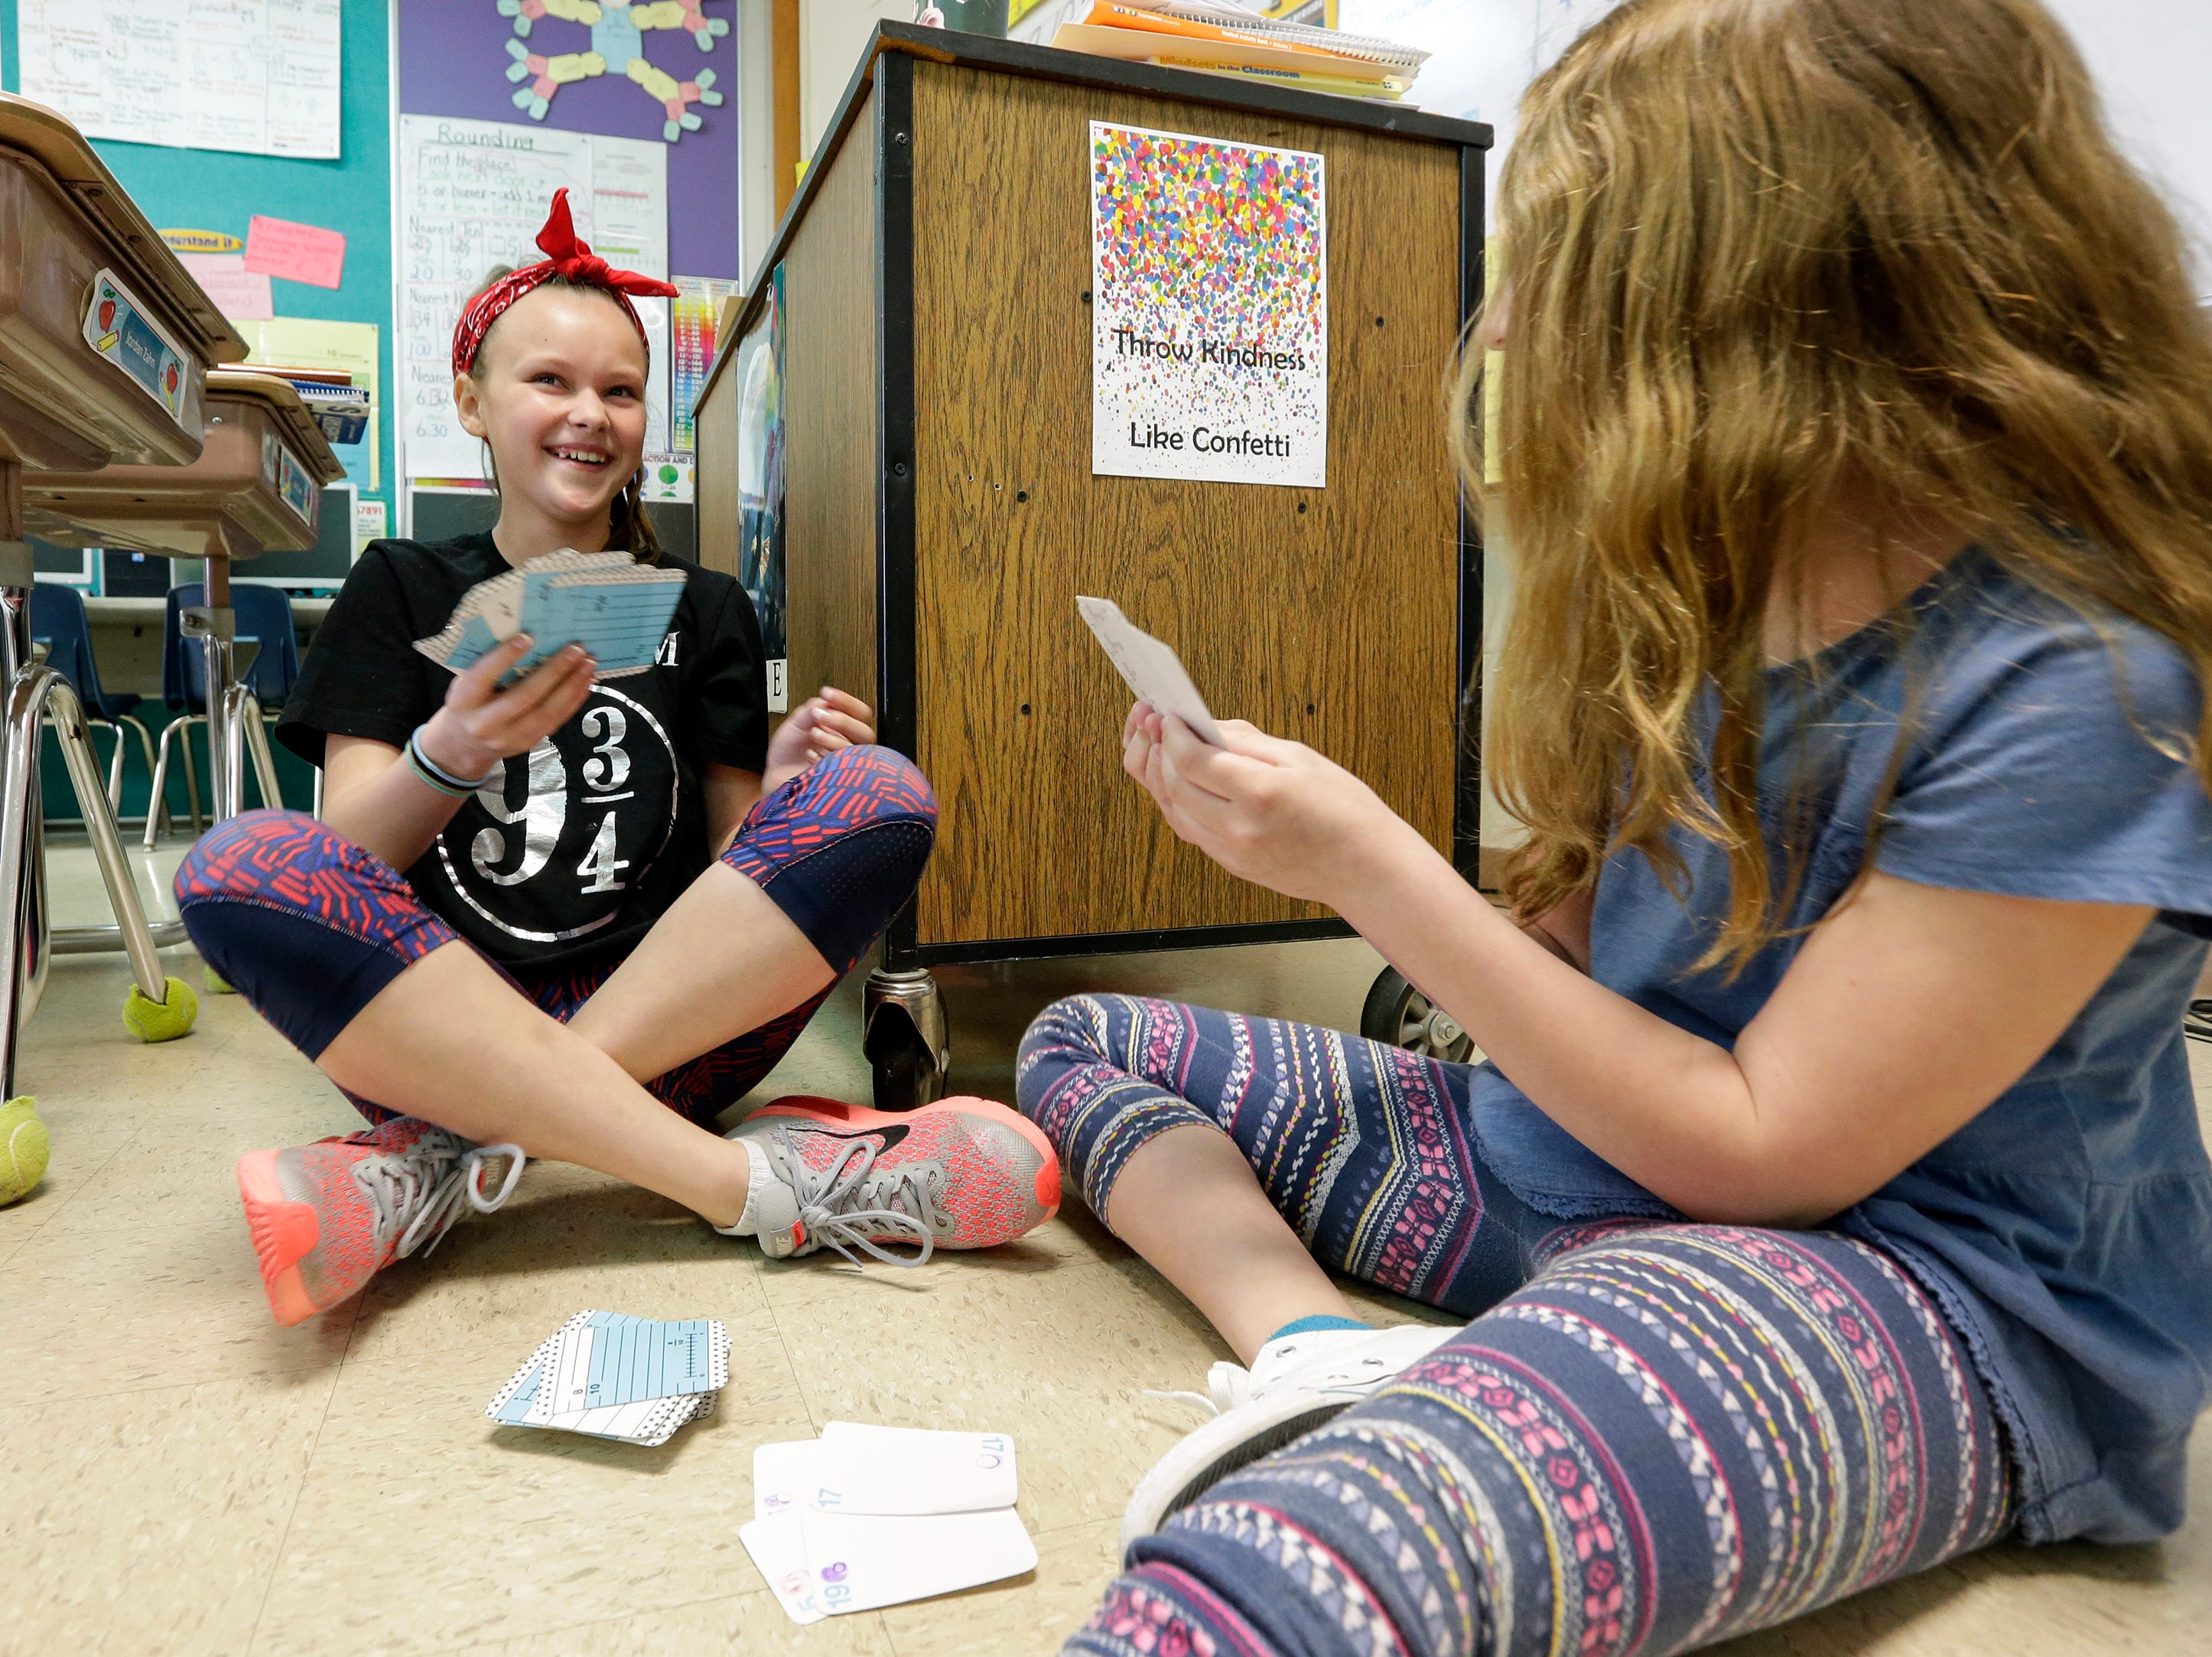 Fifth-grader Debin Talley, left, plays a math game with classmate Addison Talbert during a math lesson at Stangel Elementary School Thursday, May. 3, 2018, in Manitowoc, Wis. Under a new MPSD proposal, Stangel students would move to Riverview Early Learning Center, which would become a 4K through fifth-grade elementary school. Josh Clark/USA TODAY NETWORK-Wisconsin